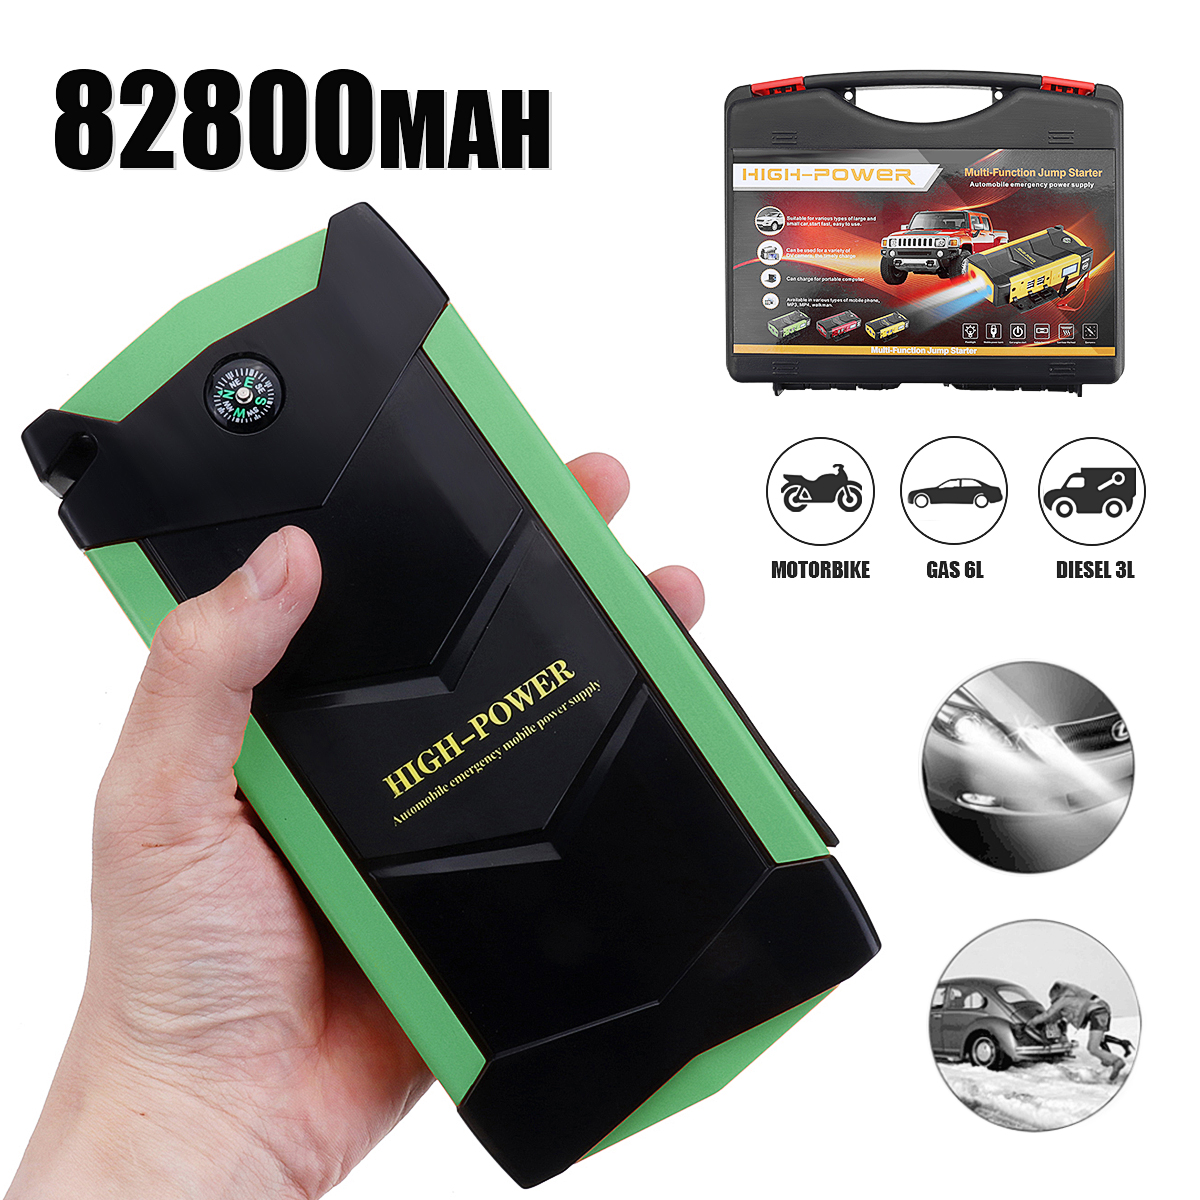 12V 82800mAh 4USB High Power Car Jump Starter Battery Charger Starting Car Booster Power Bank Tool Kit For Auto Starting Device mini portable 68000mah car battery charger starting device car jump starter booster power bank for a 12v auto starting device